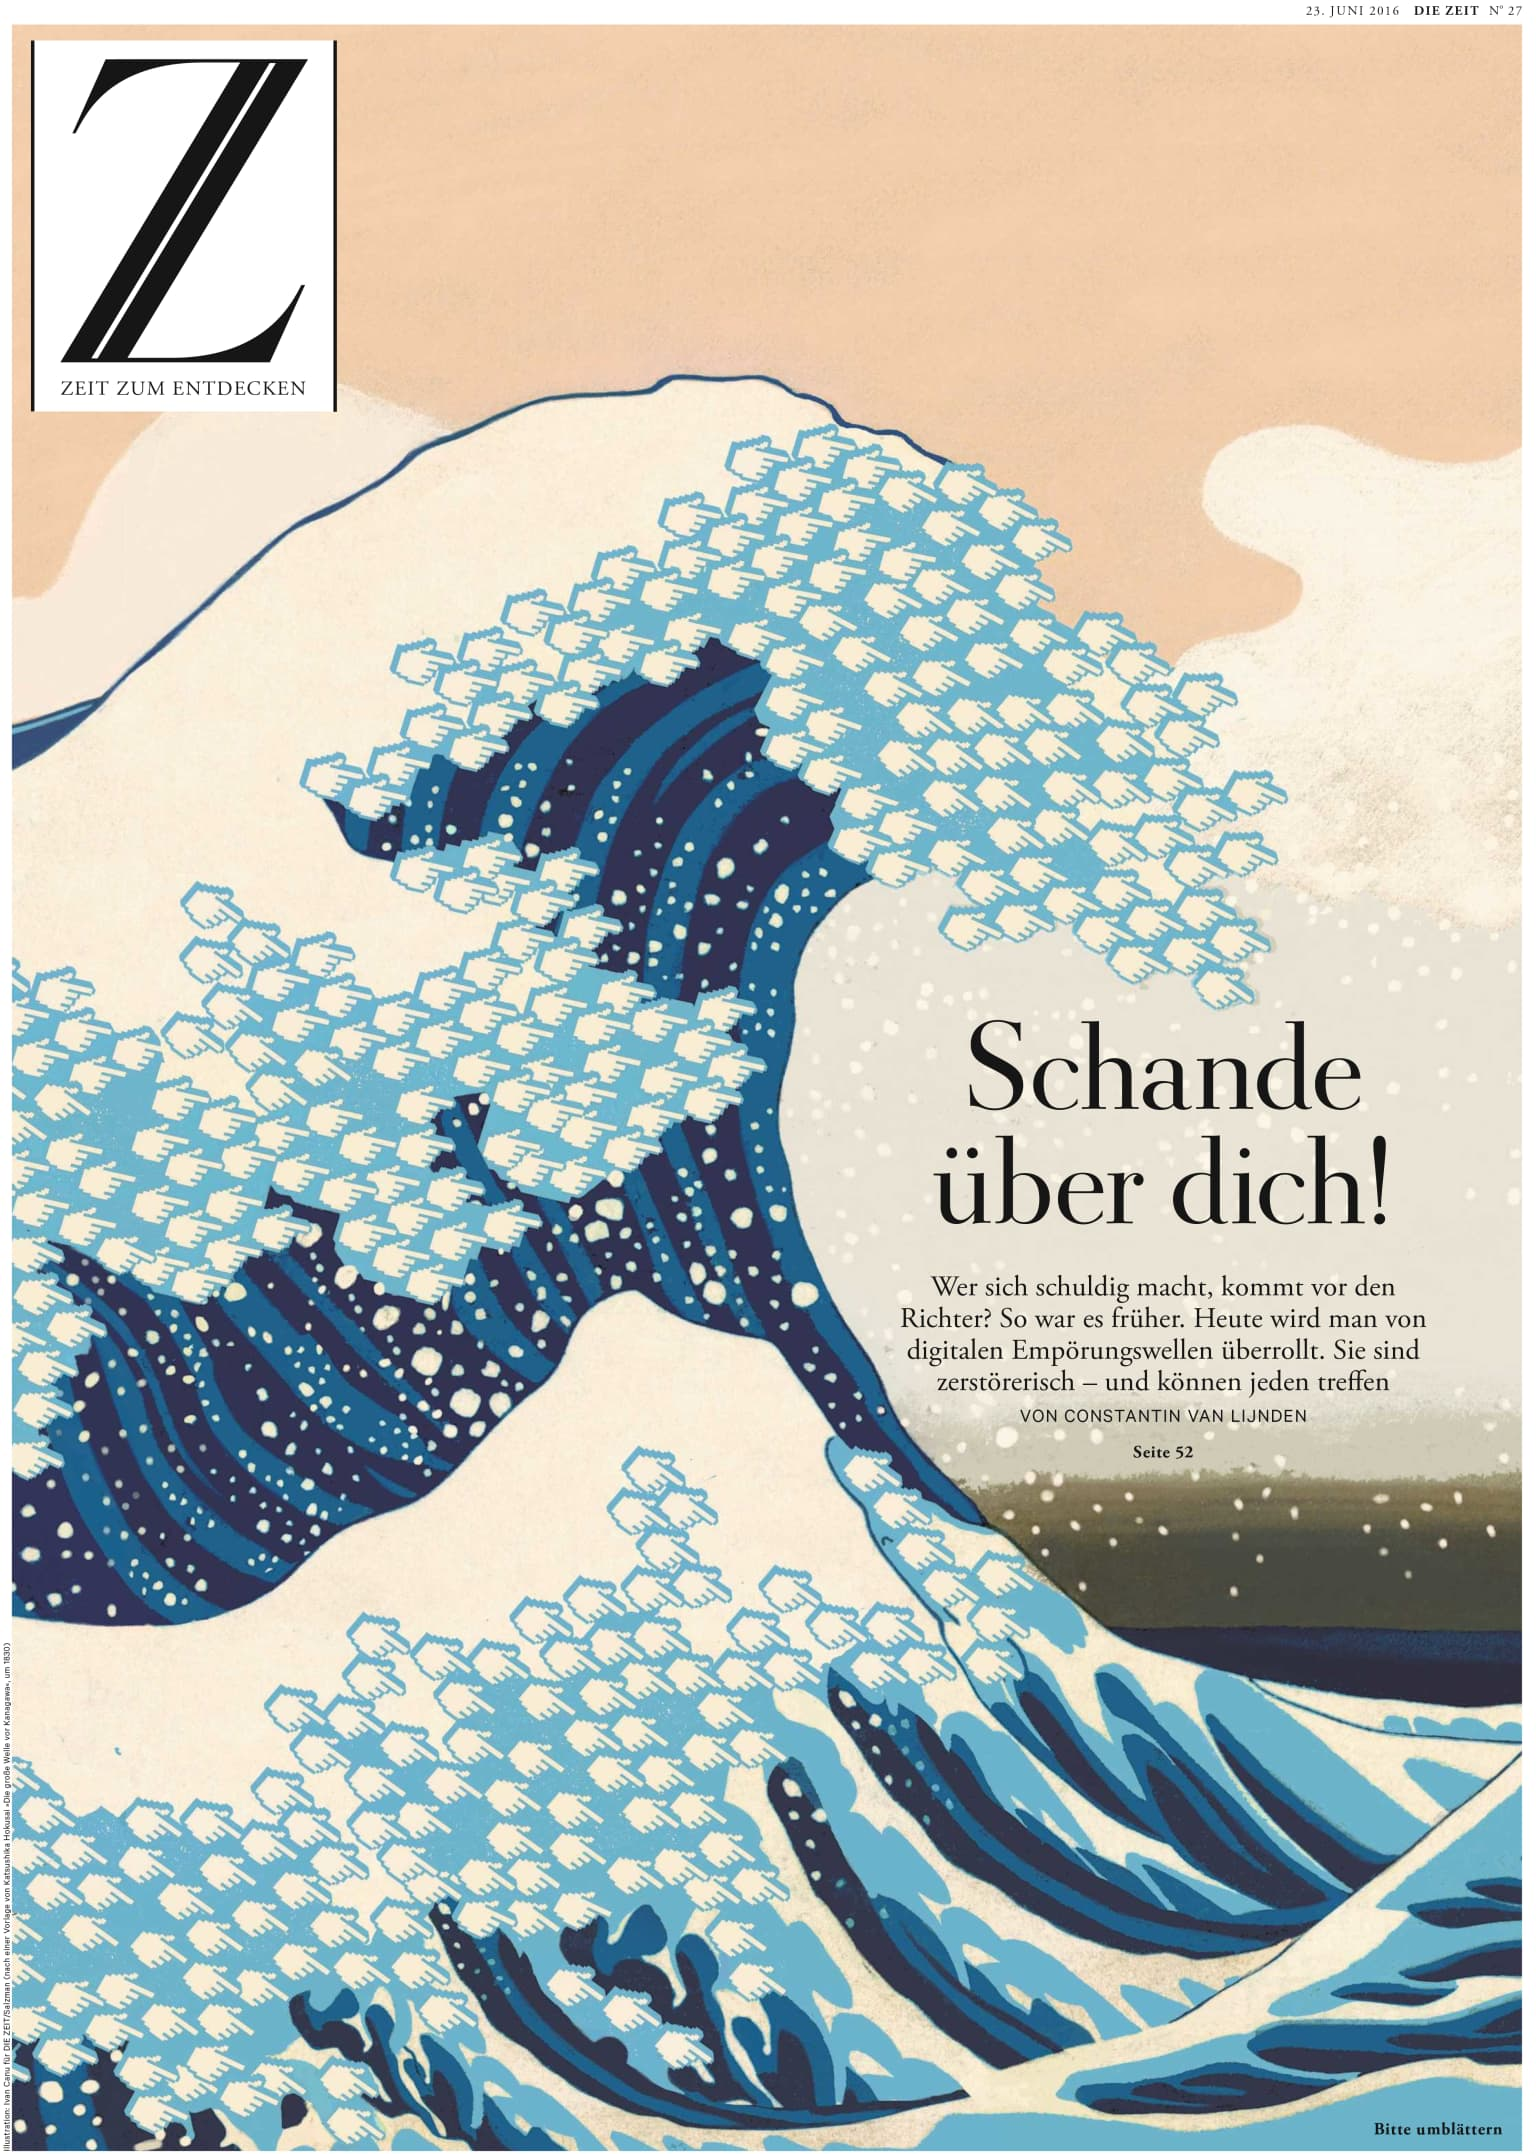 Die Zeit's magazine cover: Shame on you!